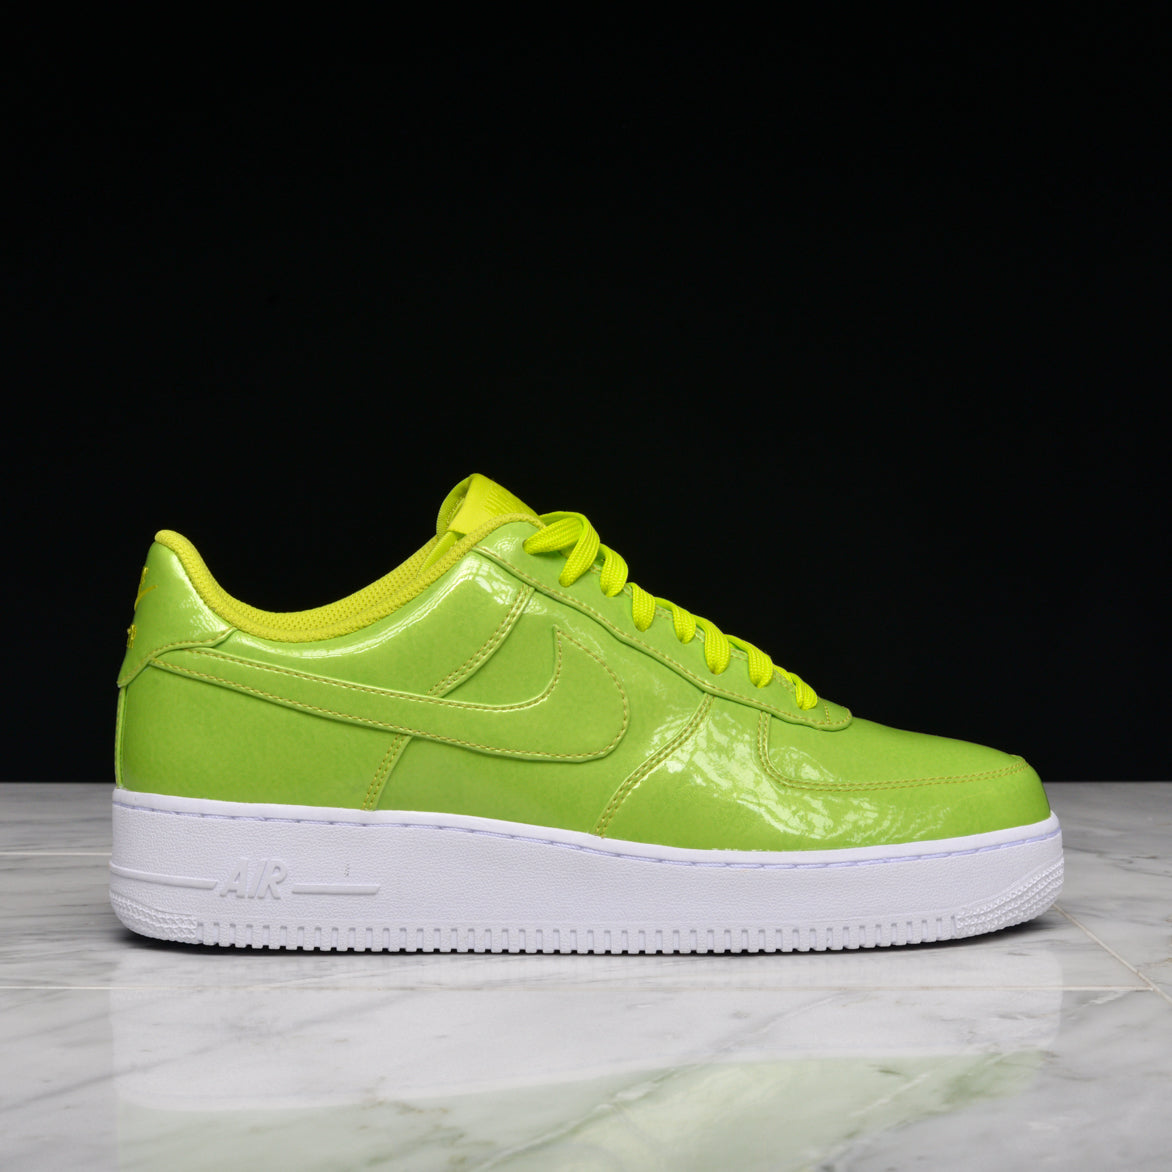 new style baf44 8f6a8 AIR FORCE 1 `07 LV8 UV - CYBER   lapstoneandhammer.com